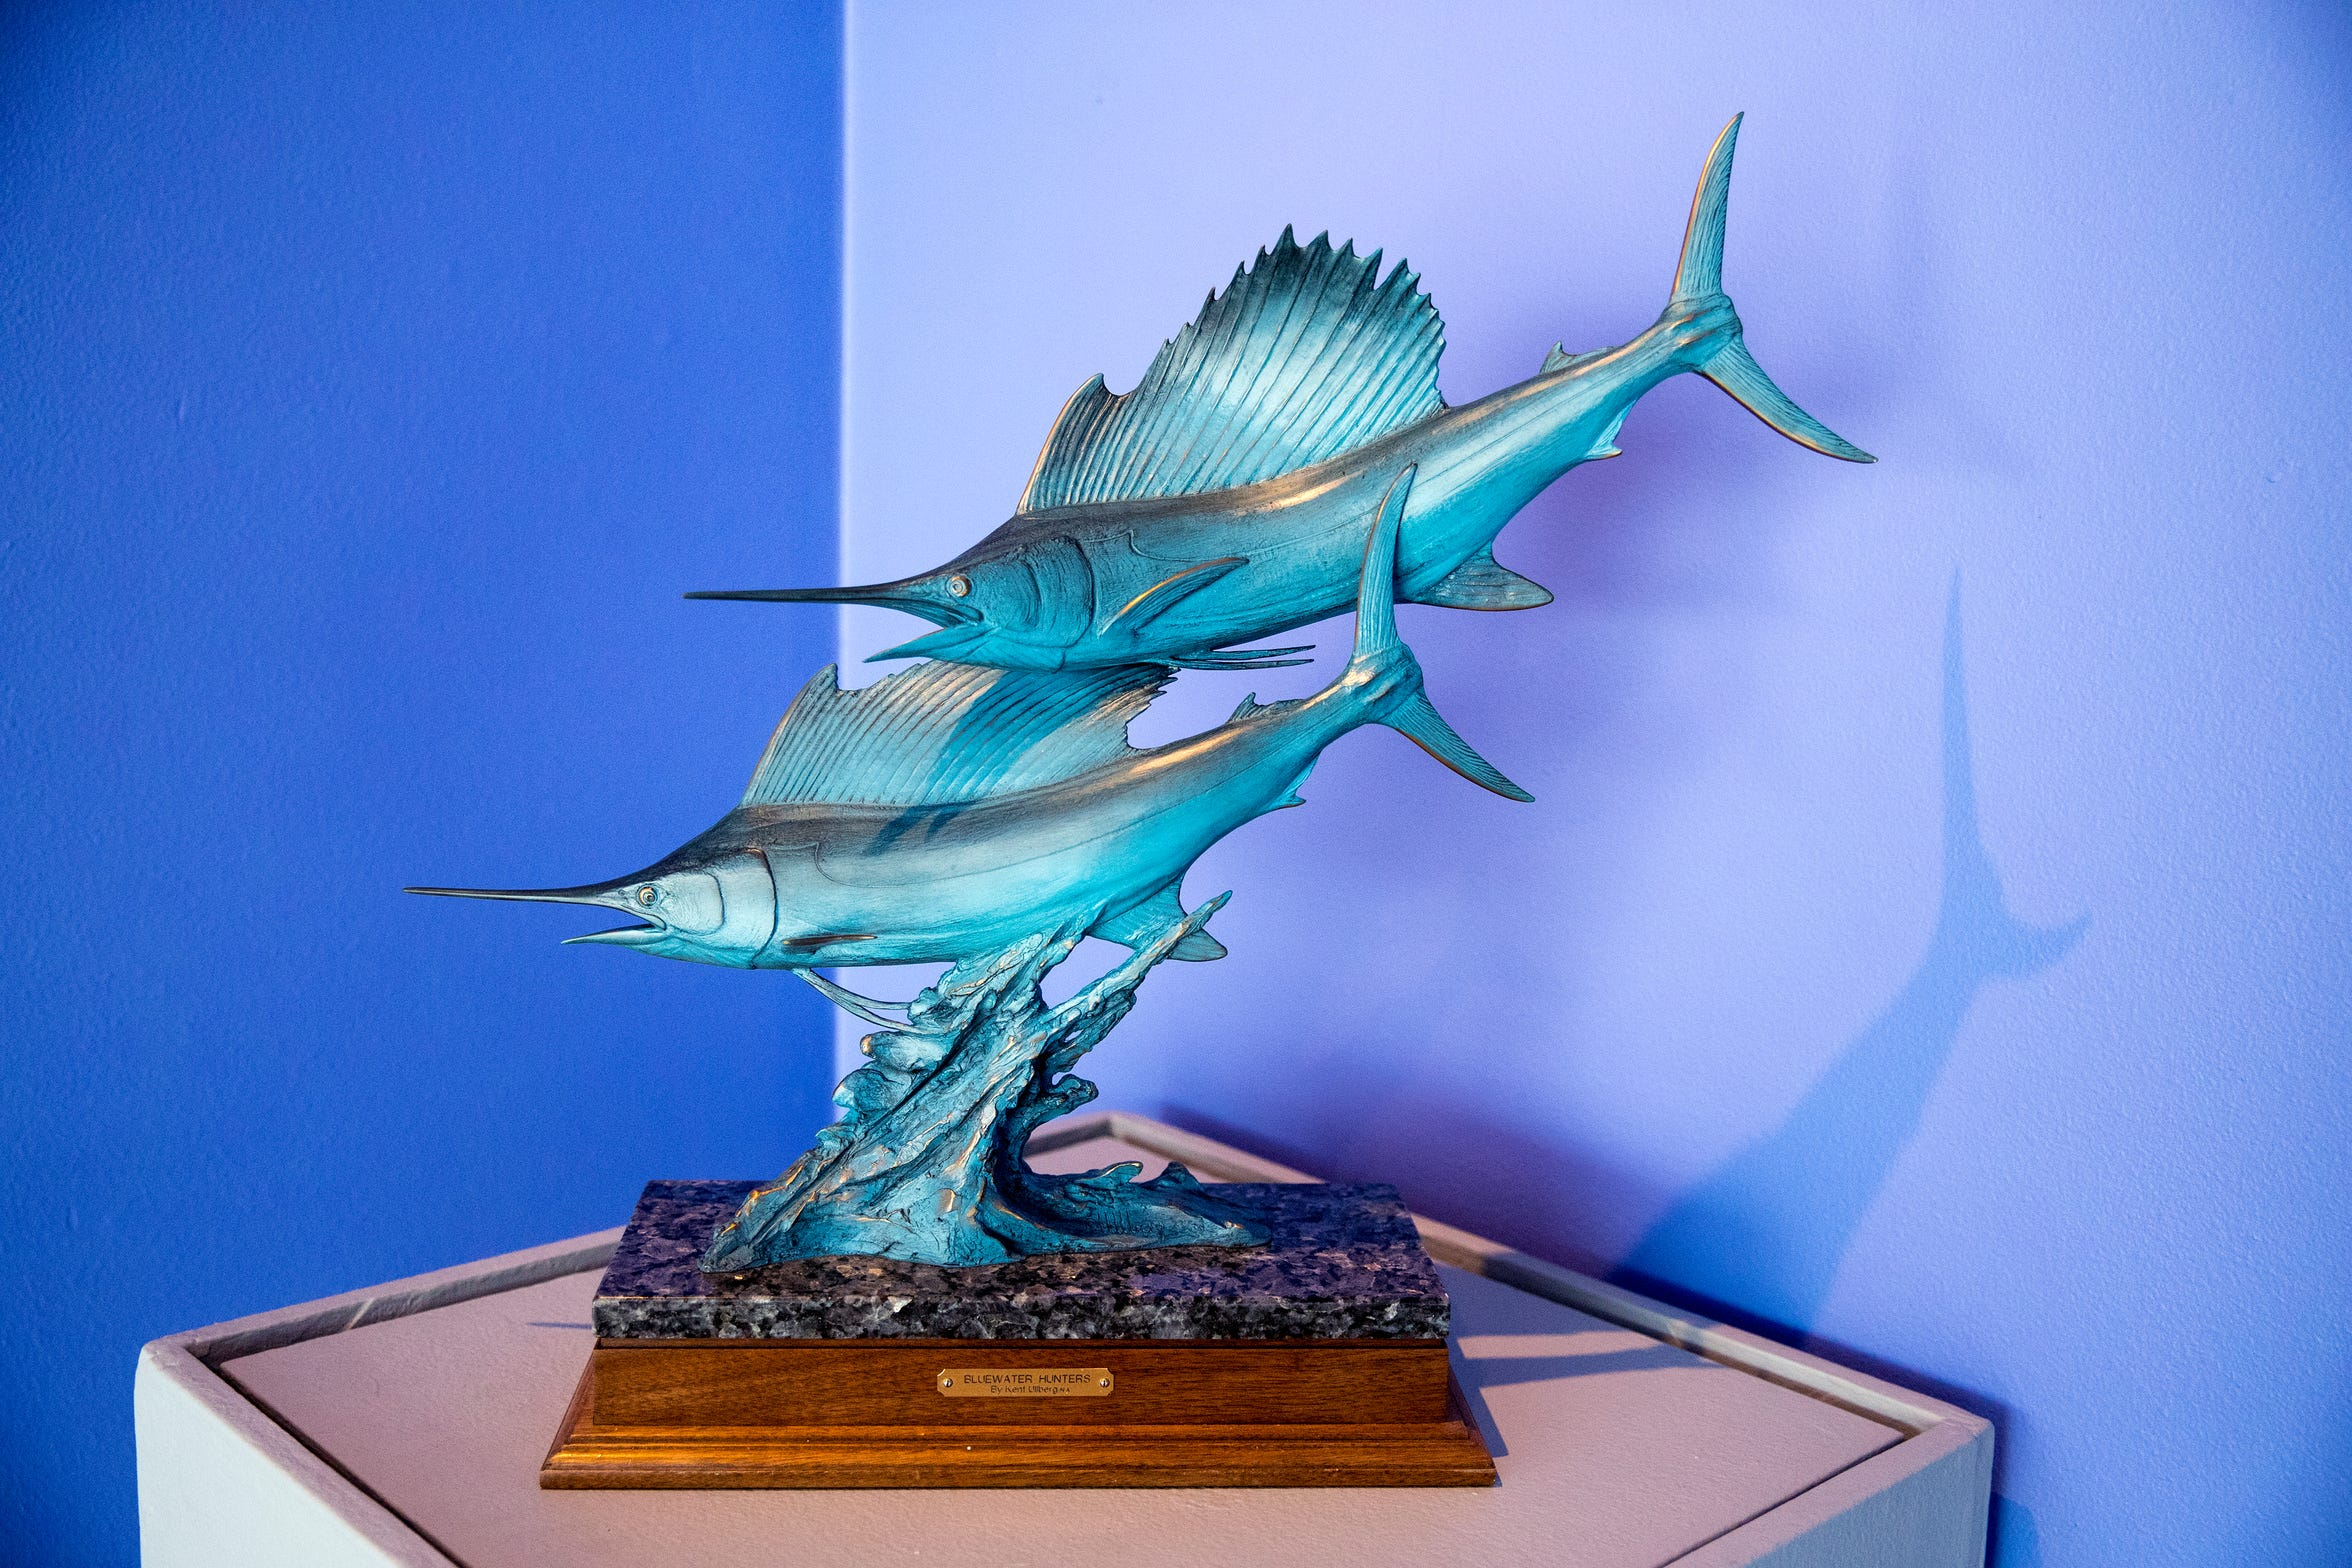 """Kent Ullberg: Celebrating the Wild and Wonderful"" is currently on display at the Art Museum of South Texas. It includes 65 sculptures by Kent Ullberg spanning his career, seven large scale photos of sculptures and five educational technology stations. The exhibit spans five galleries at the museum. ""Blue Water Hunters (Sailfish)""  is one of the sculptures on exhibit."